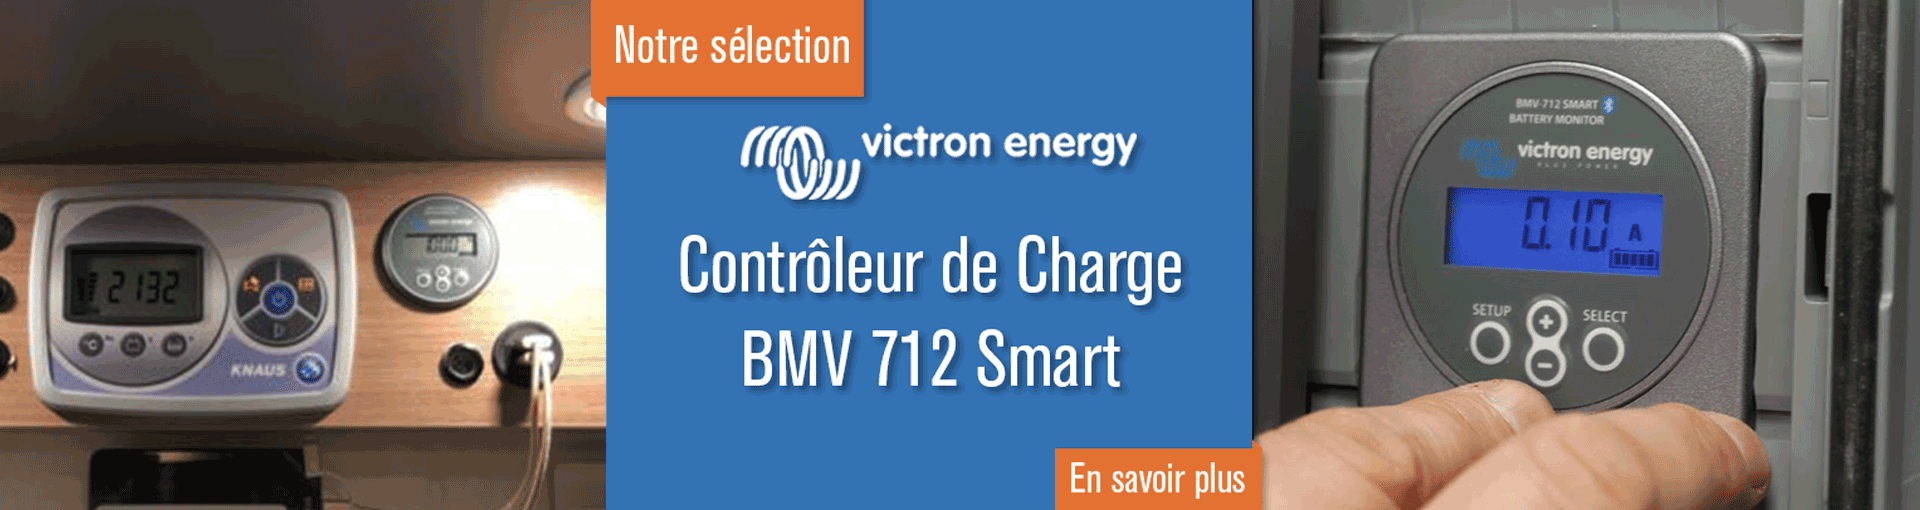 Contrôleur De Charge Batterie BMV 712 Smart - Victron Energy